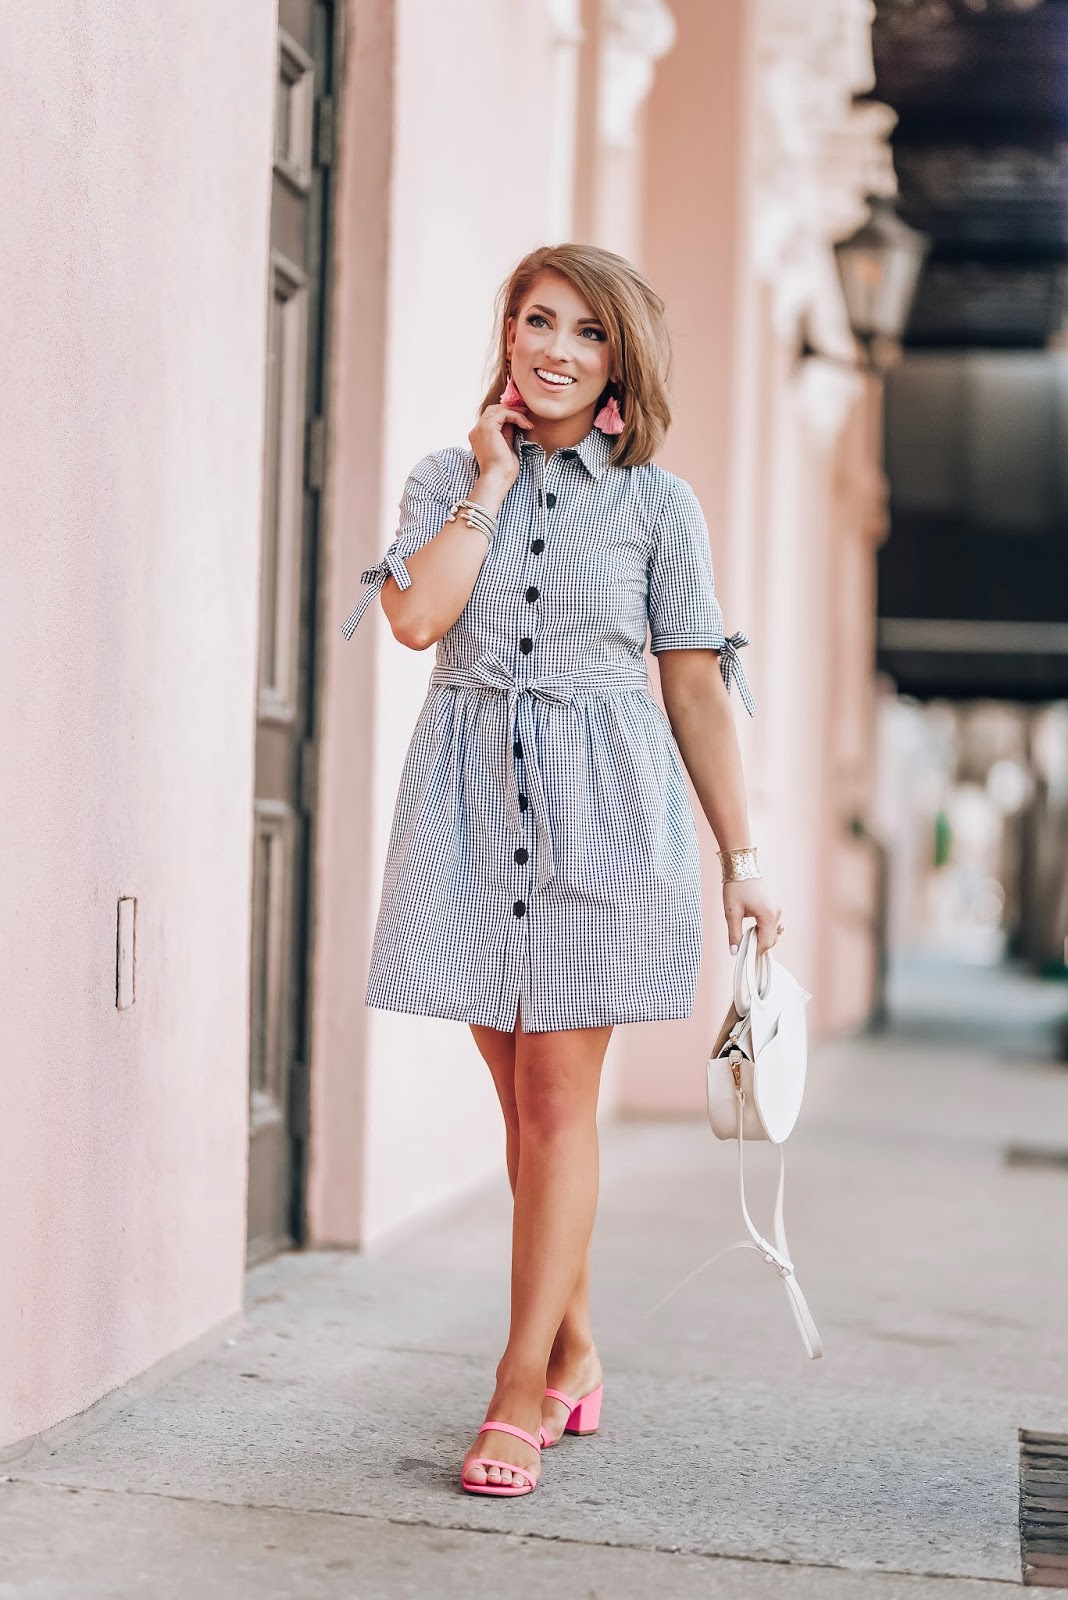 Gingham Bow Sleeve Button Up Dress in Charleston, SC - Something Delightful Blog #springstyle #gingham